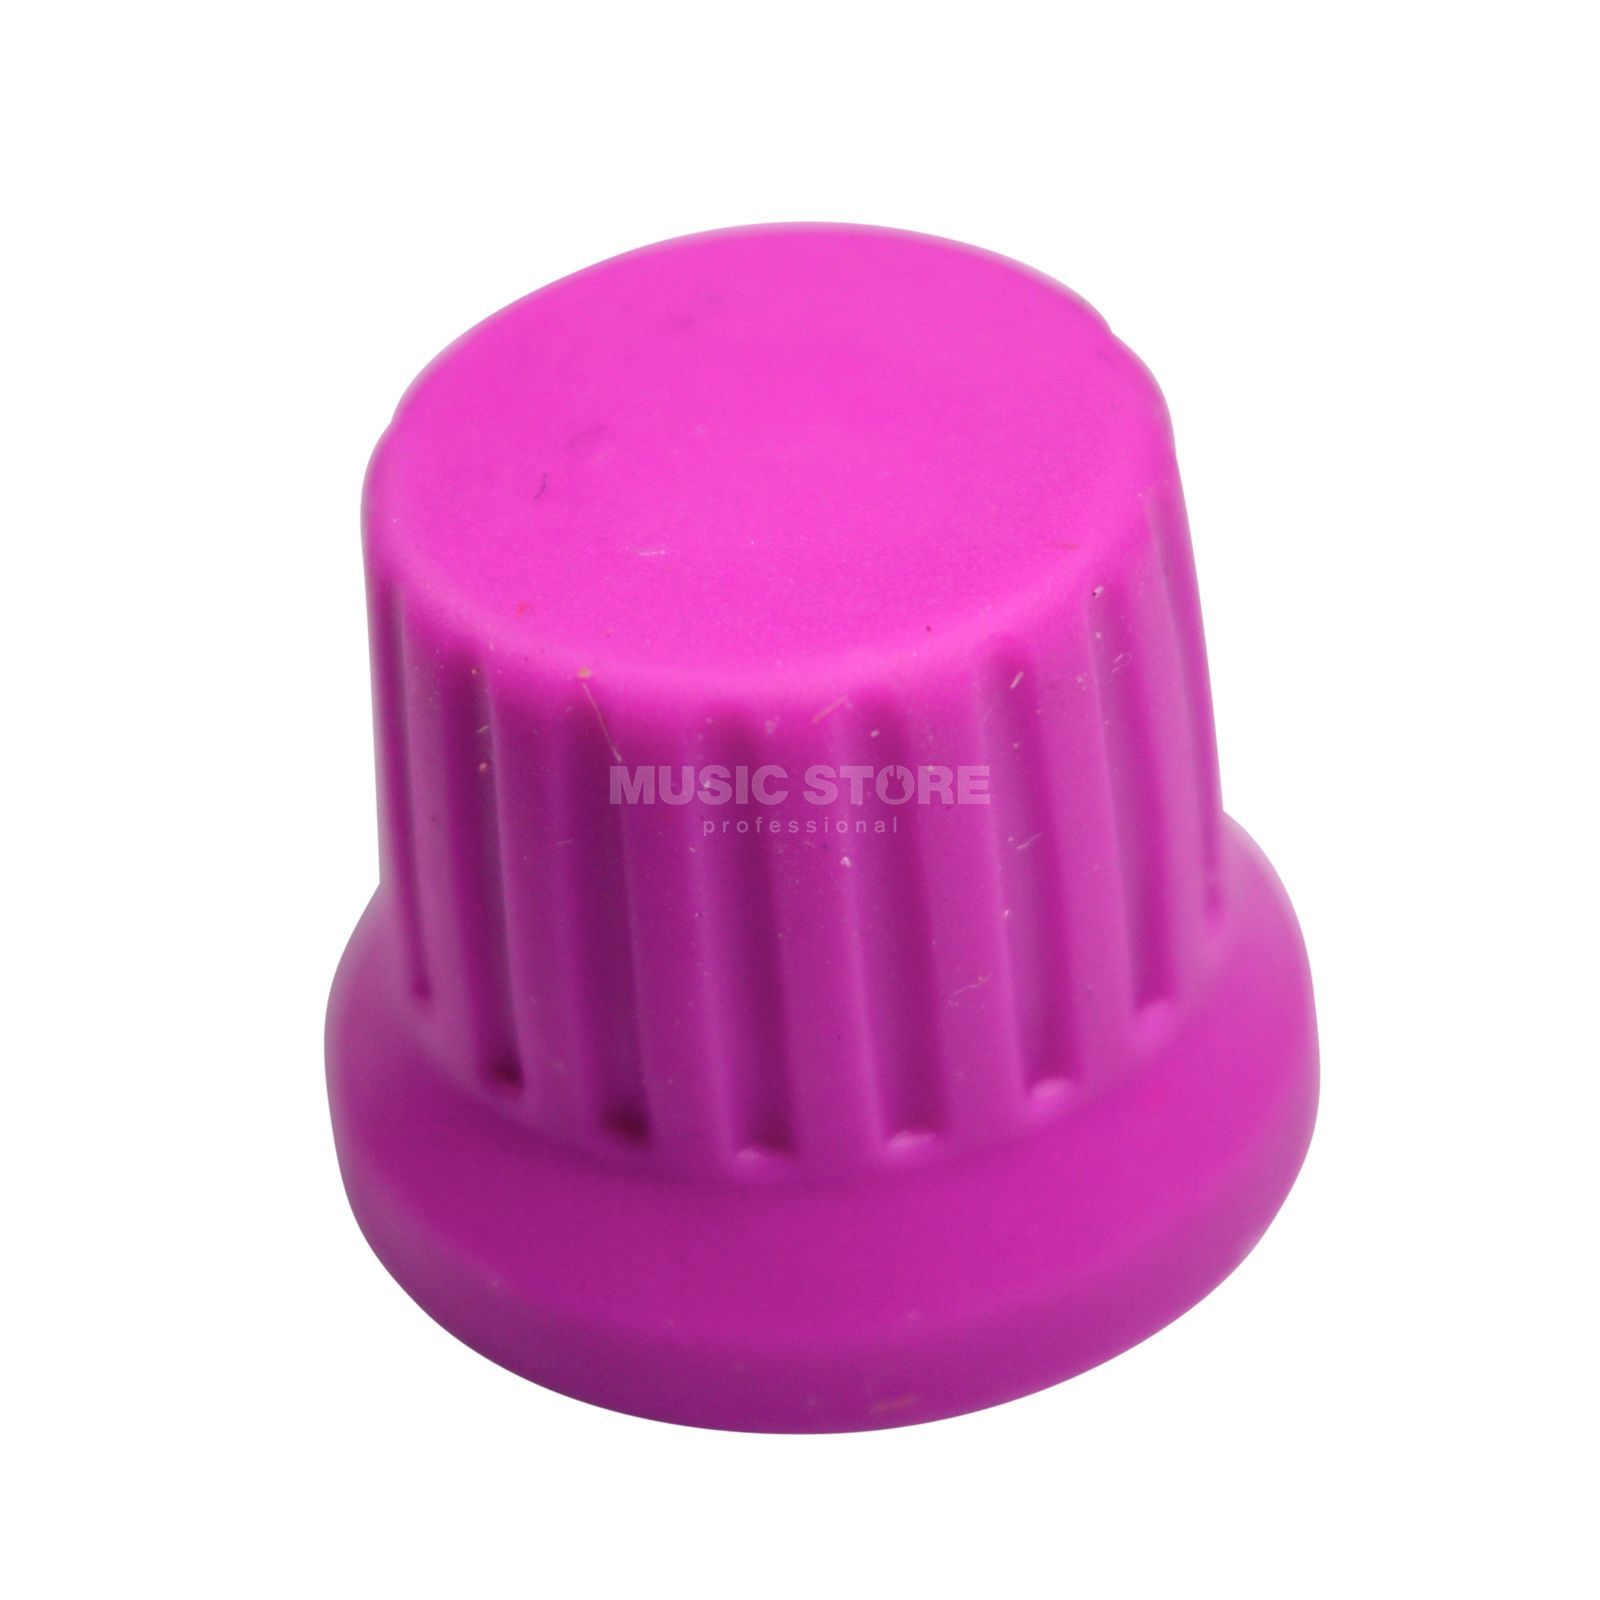 DJ TECHTOOLS Chroma Caps Encoder Knob purple Produktbild